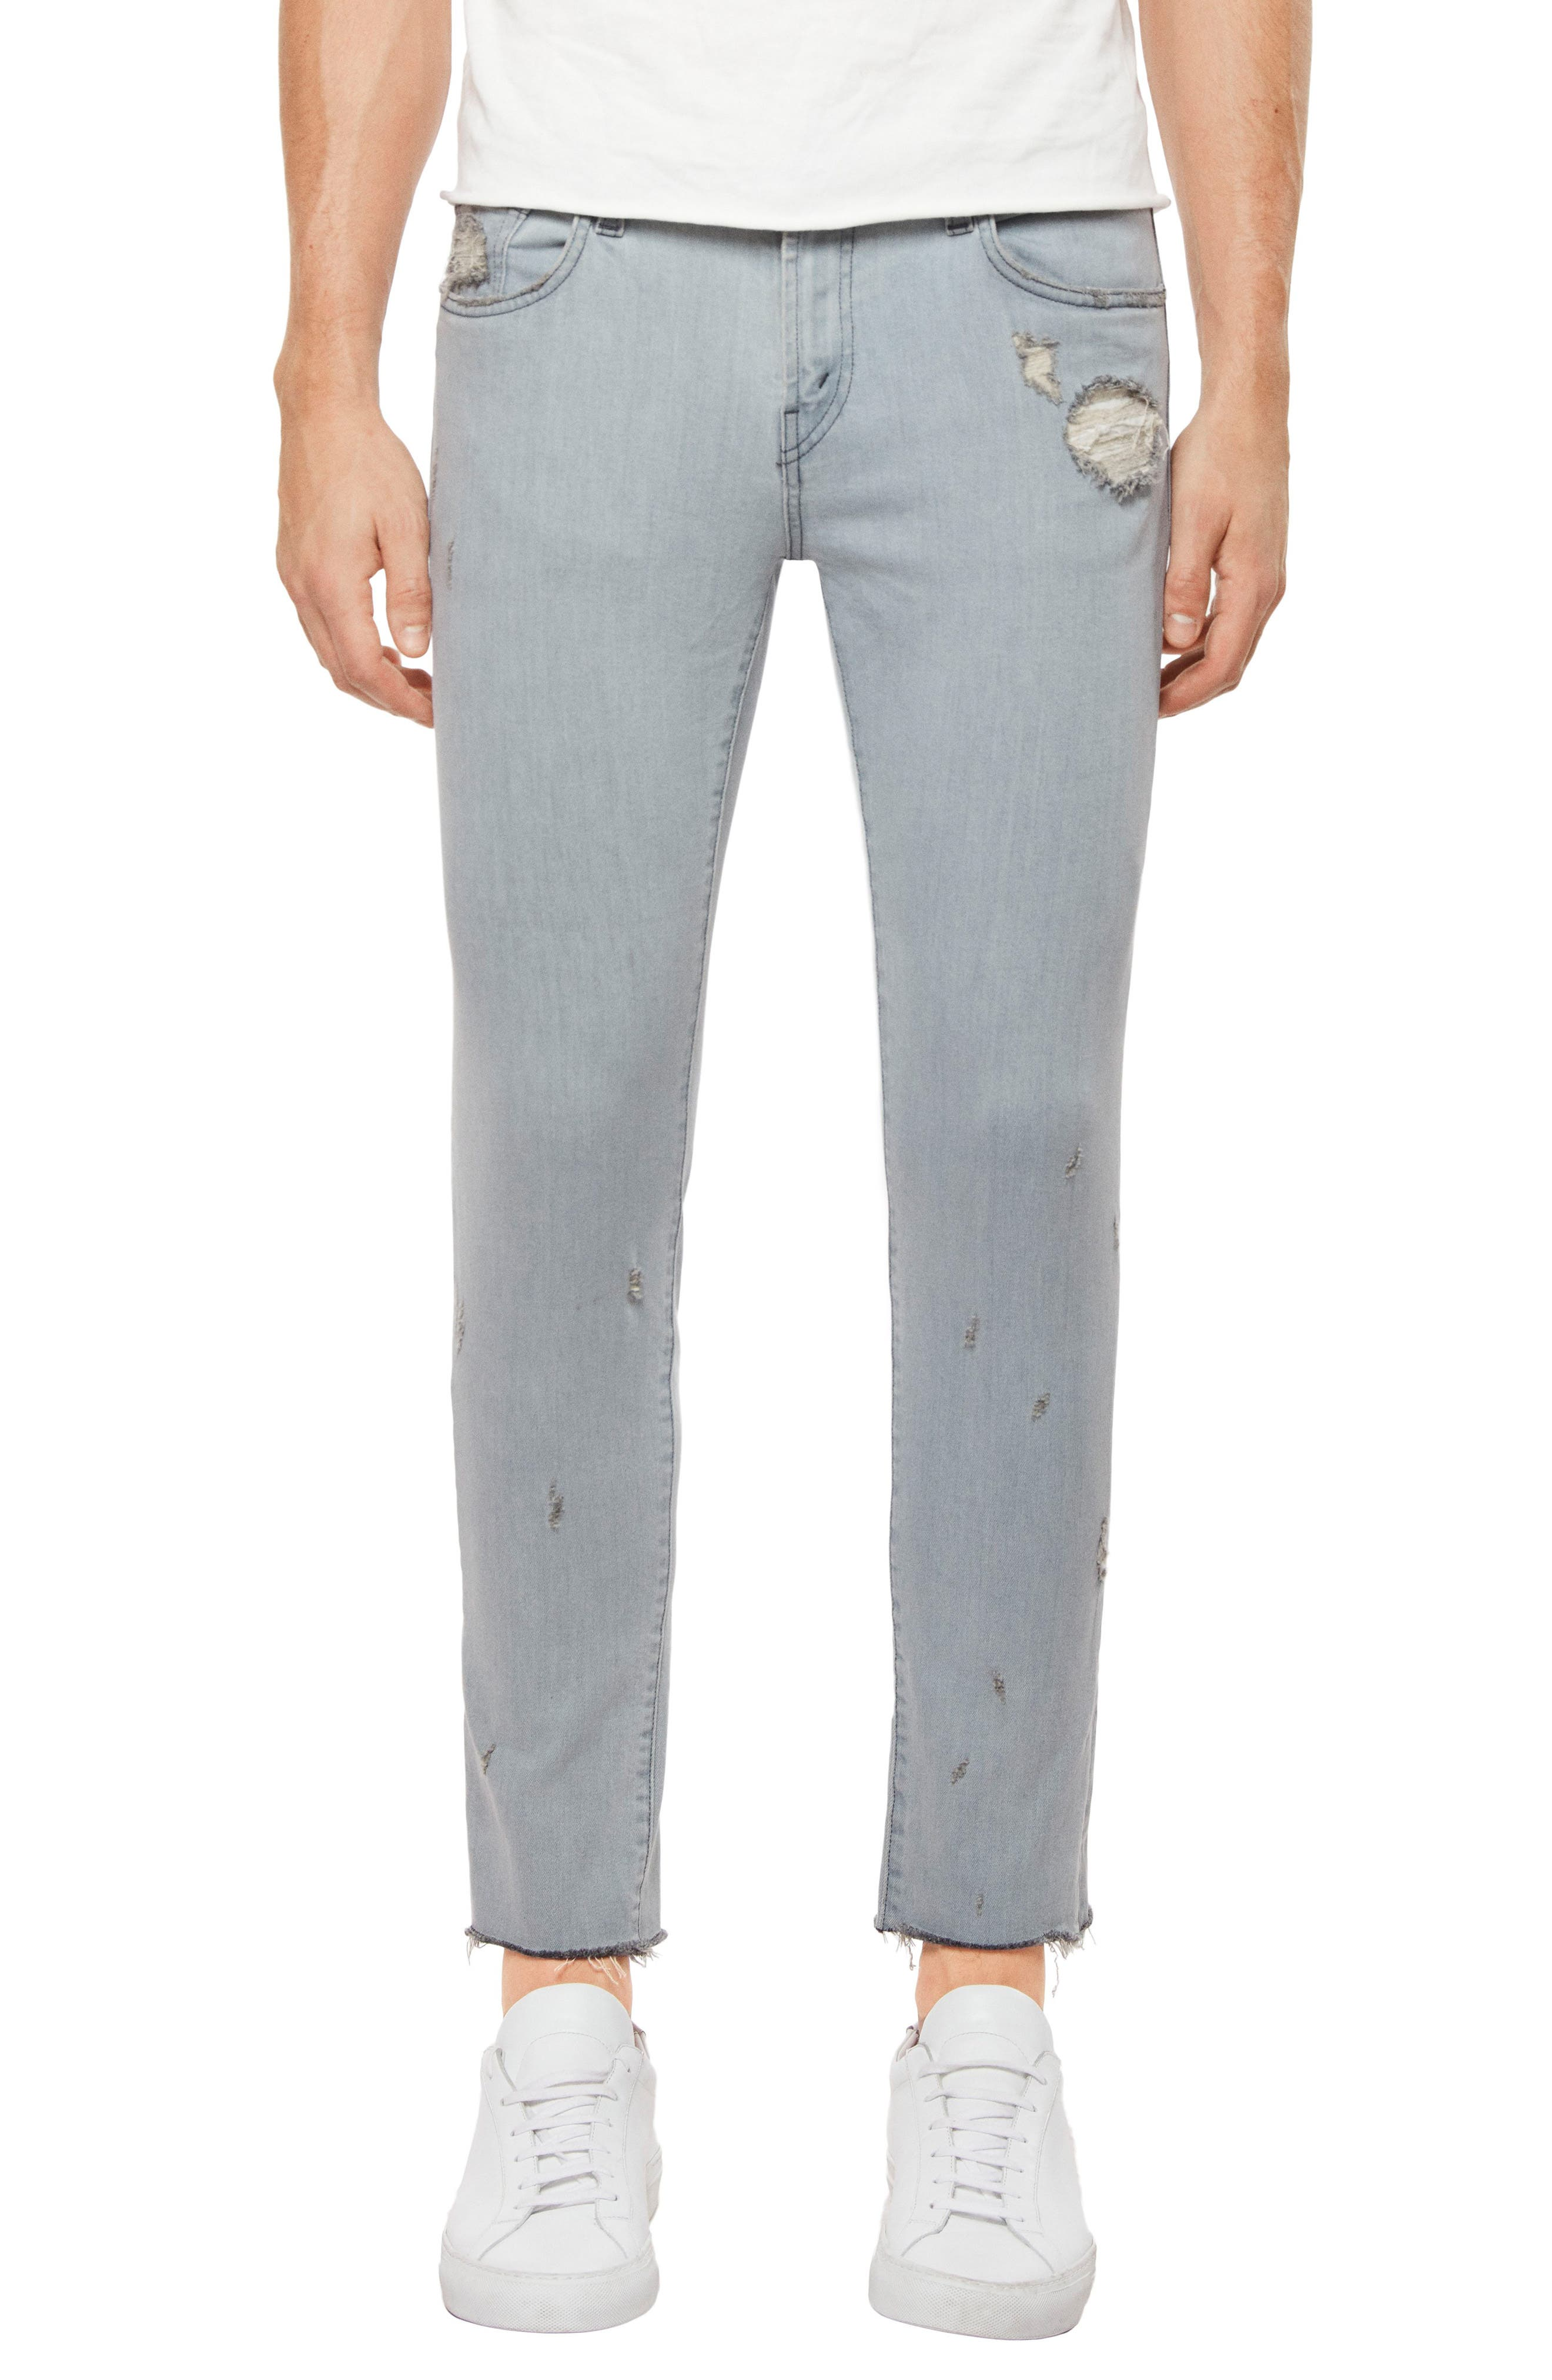 J BRAND,                             Tyler Slim Fit Jeans,                             Main thumbnail 1, color,                             029